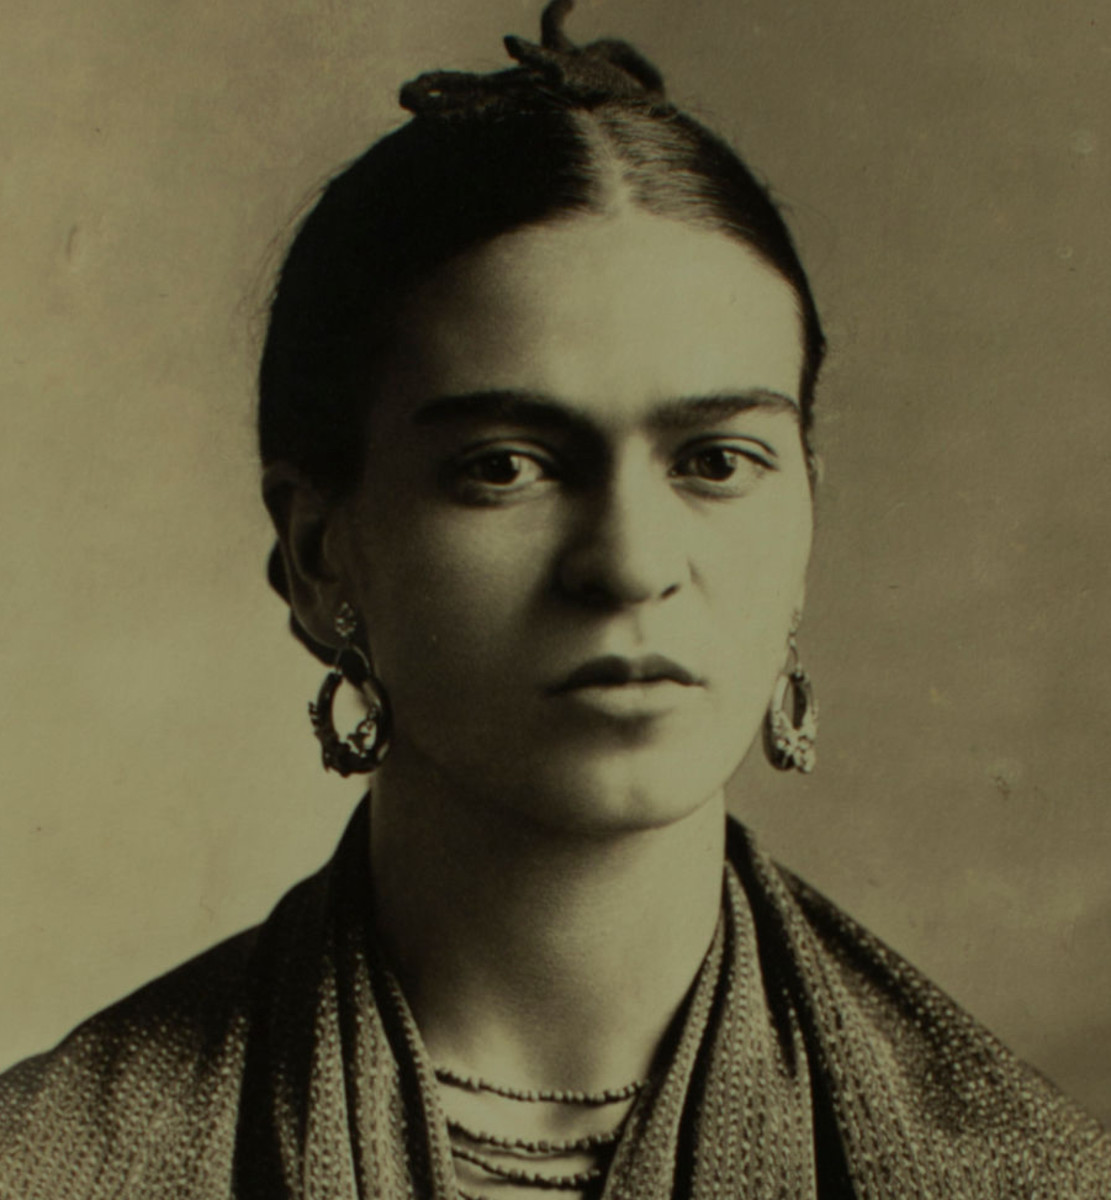 13 Reasons Why Libro Español Frida Kahlo Paintings Quotes Life Biography